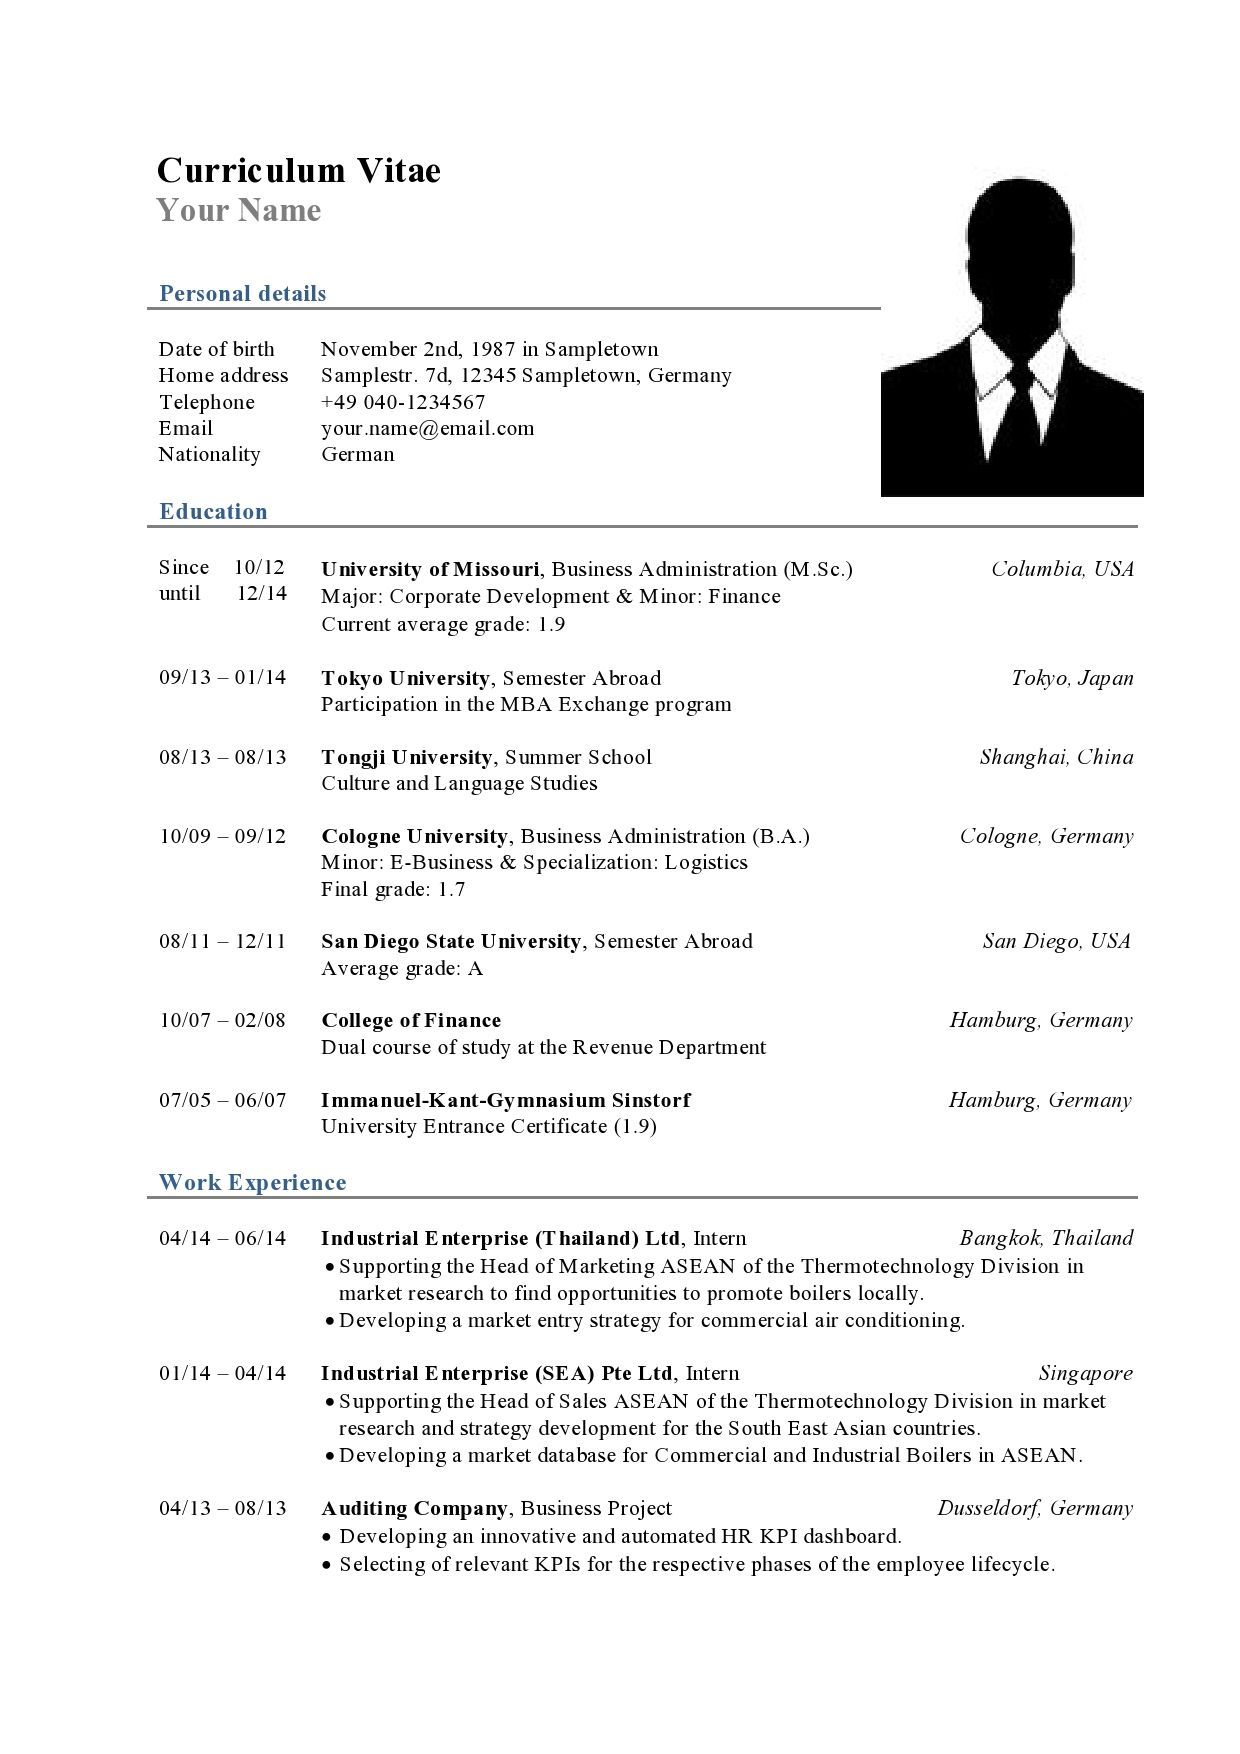 Consulting CV Download your consulting resume template